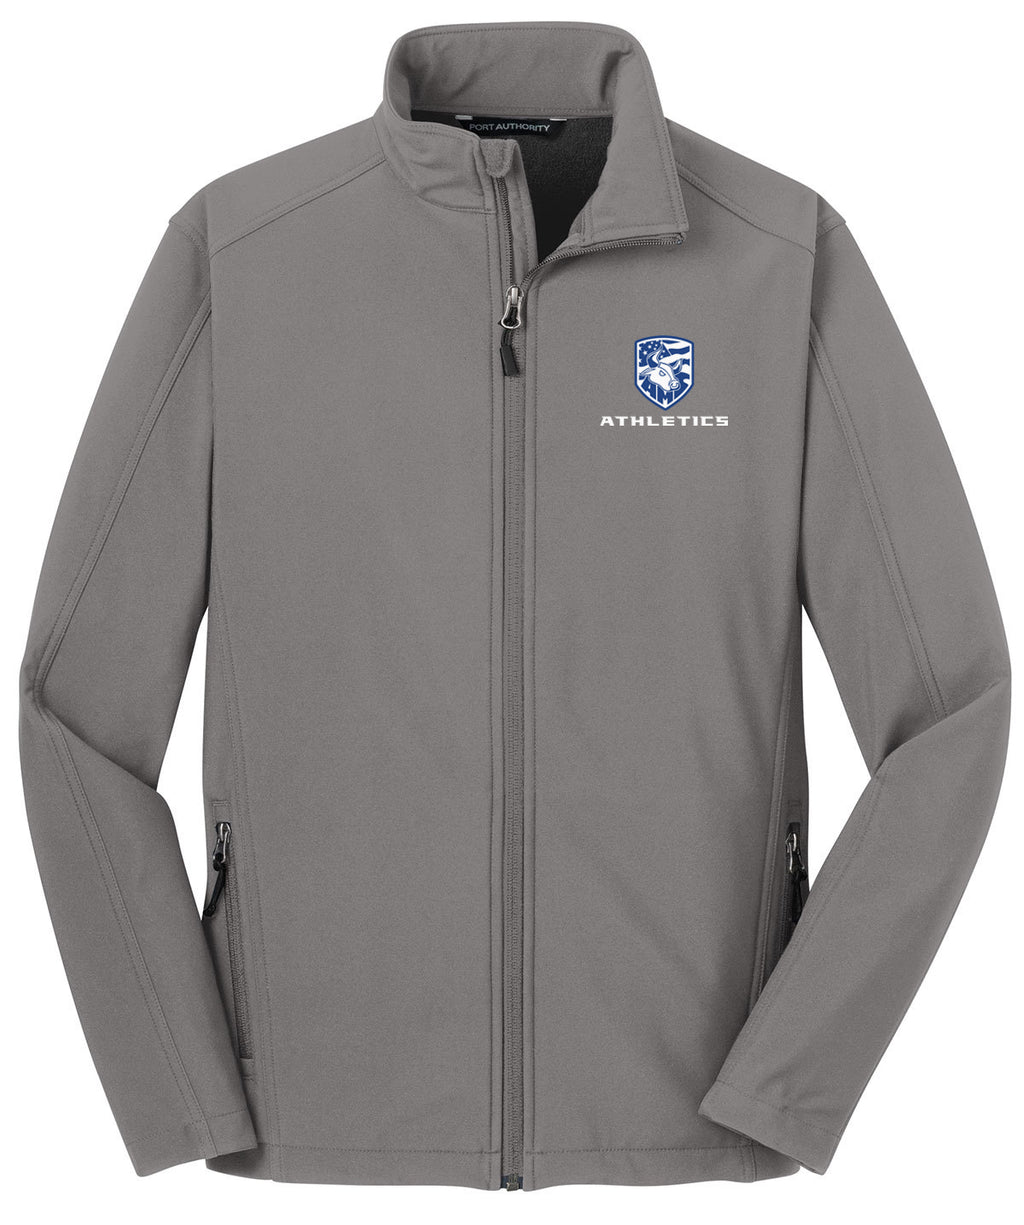 Accompsett Middle School Men's Smoke Silver Soft Shell Jacket